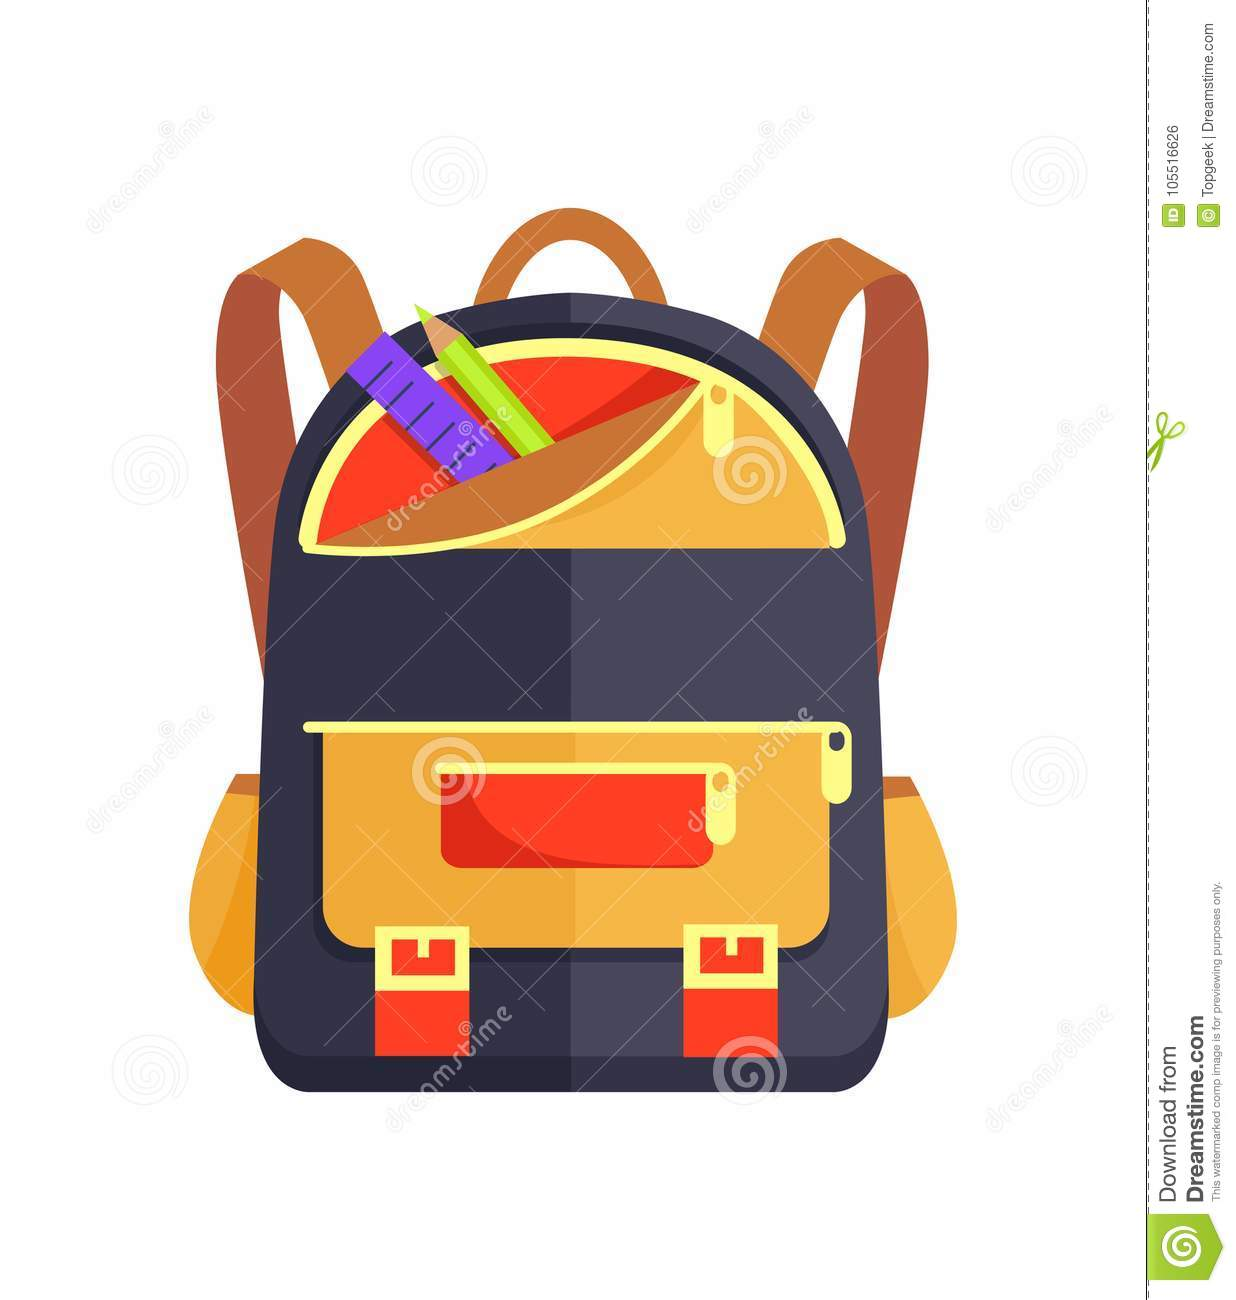 964e21174a Backpack For Kid With School Stationery Accessory Stock Vector ...